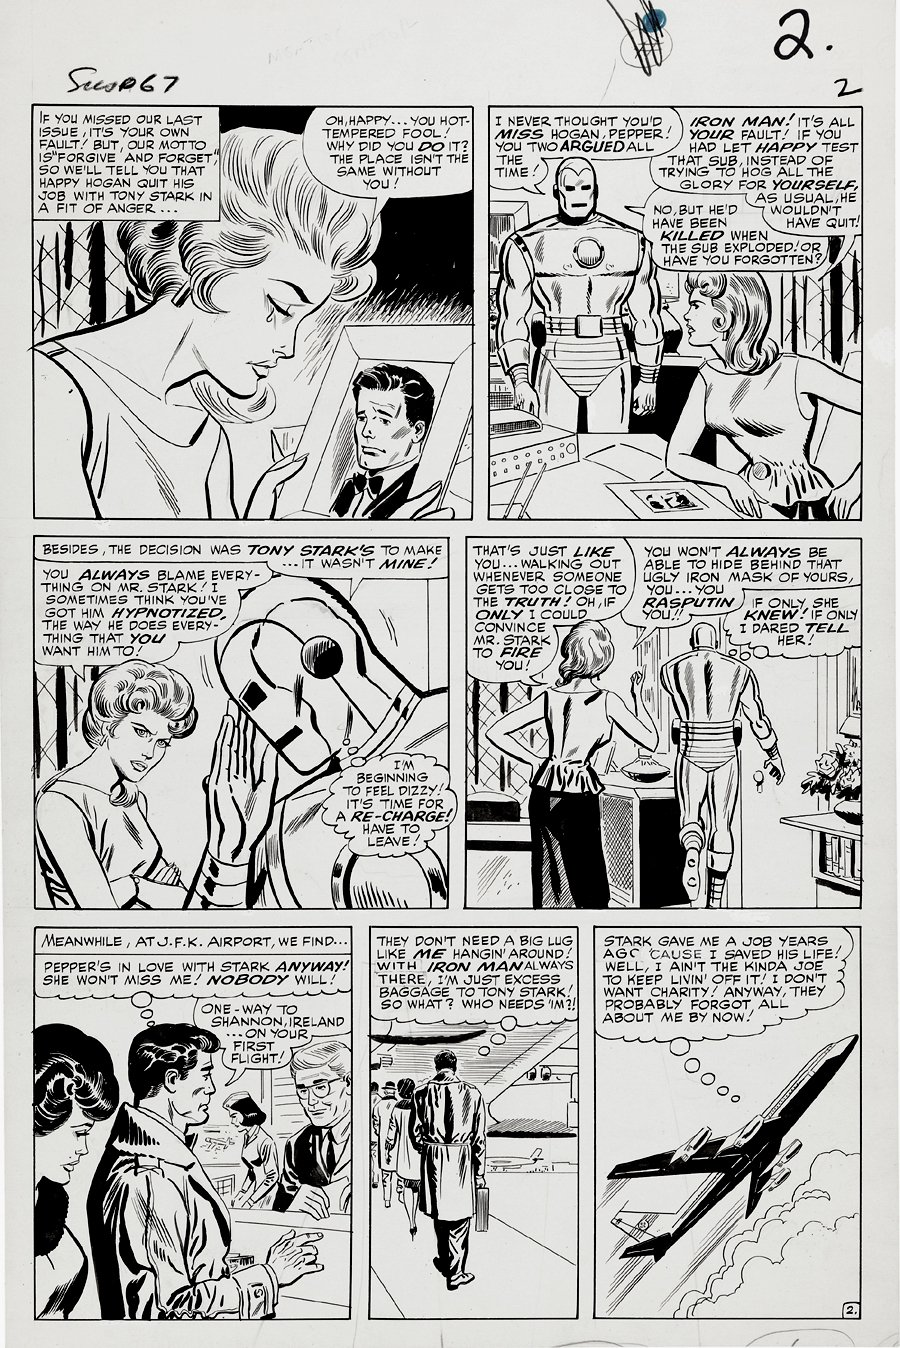 Tales of Suspense #67 p 2 (Large Art) 1964